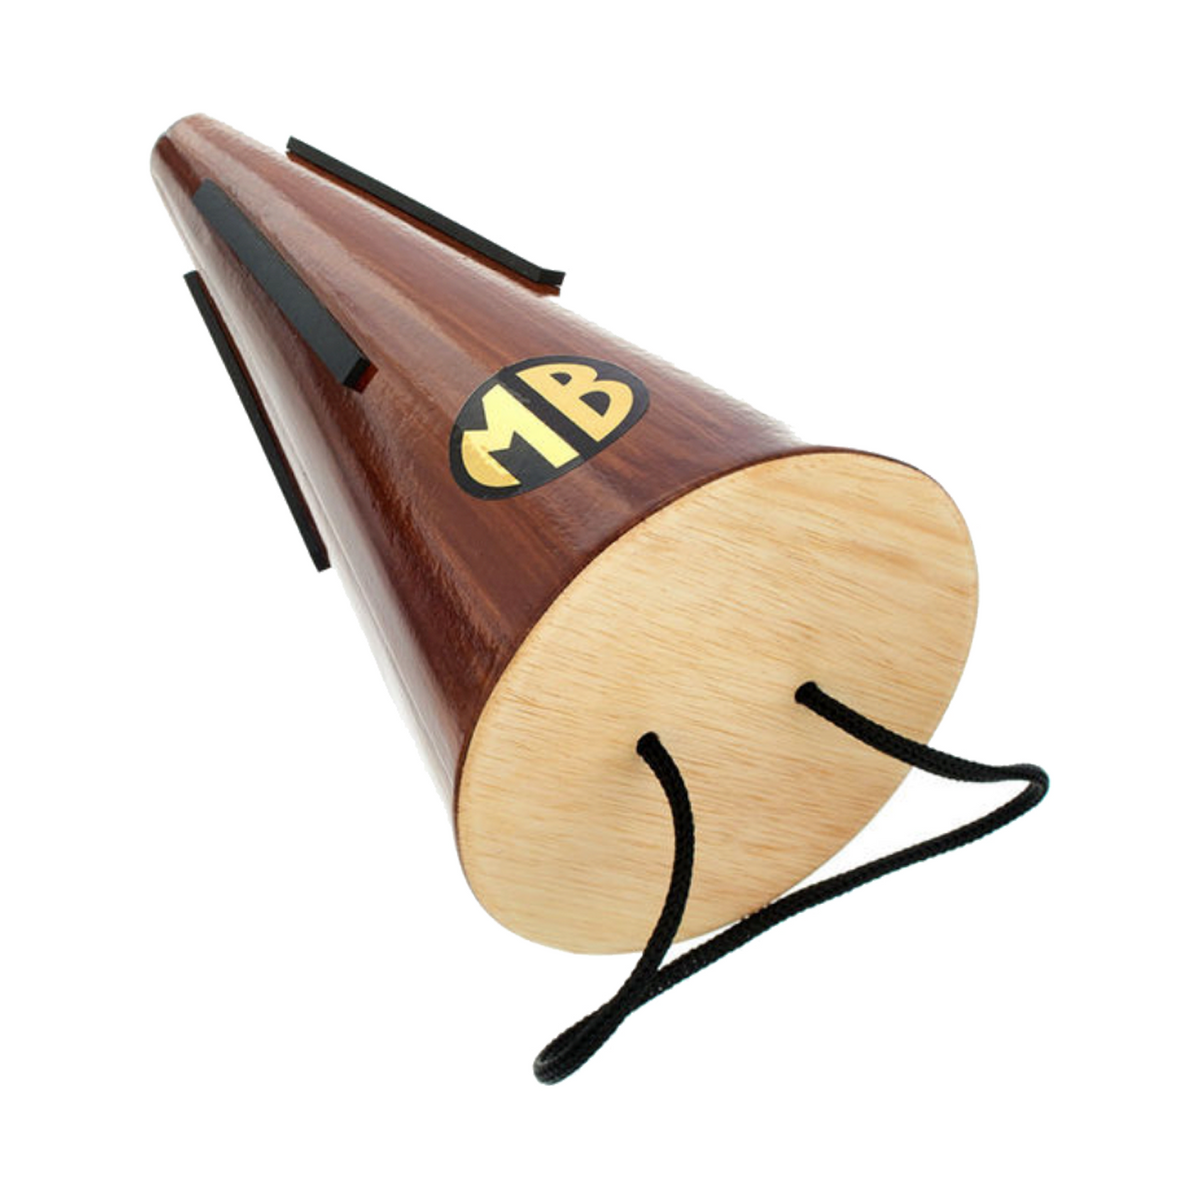 Marcus Bonna - Tunable Straight Mute for French Horn (Wood/Cardboard)-Mute-Marcus Bonna-Music Elements